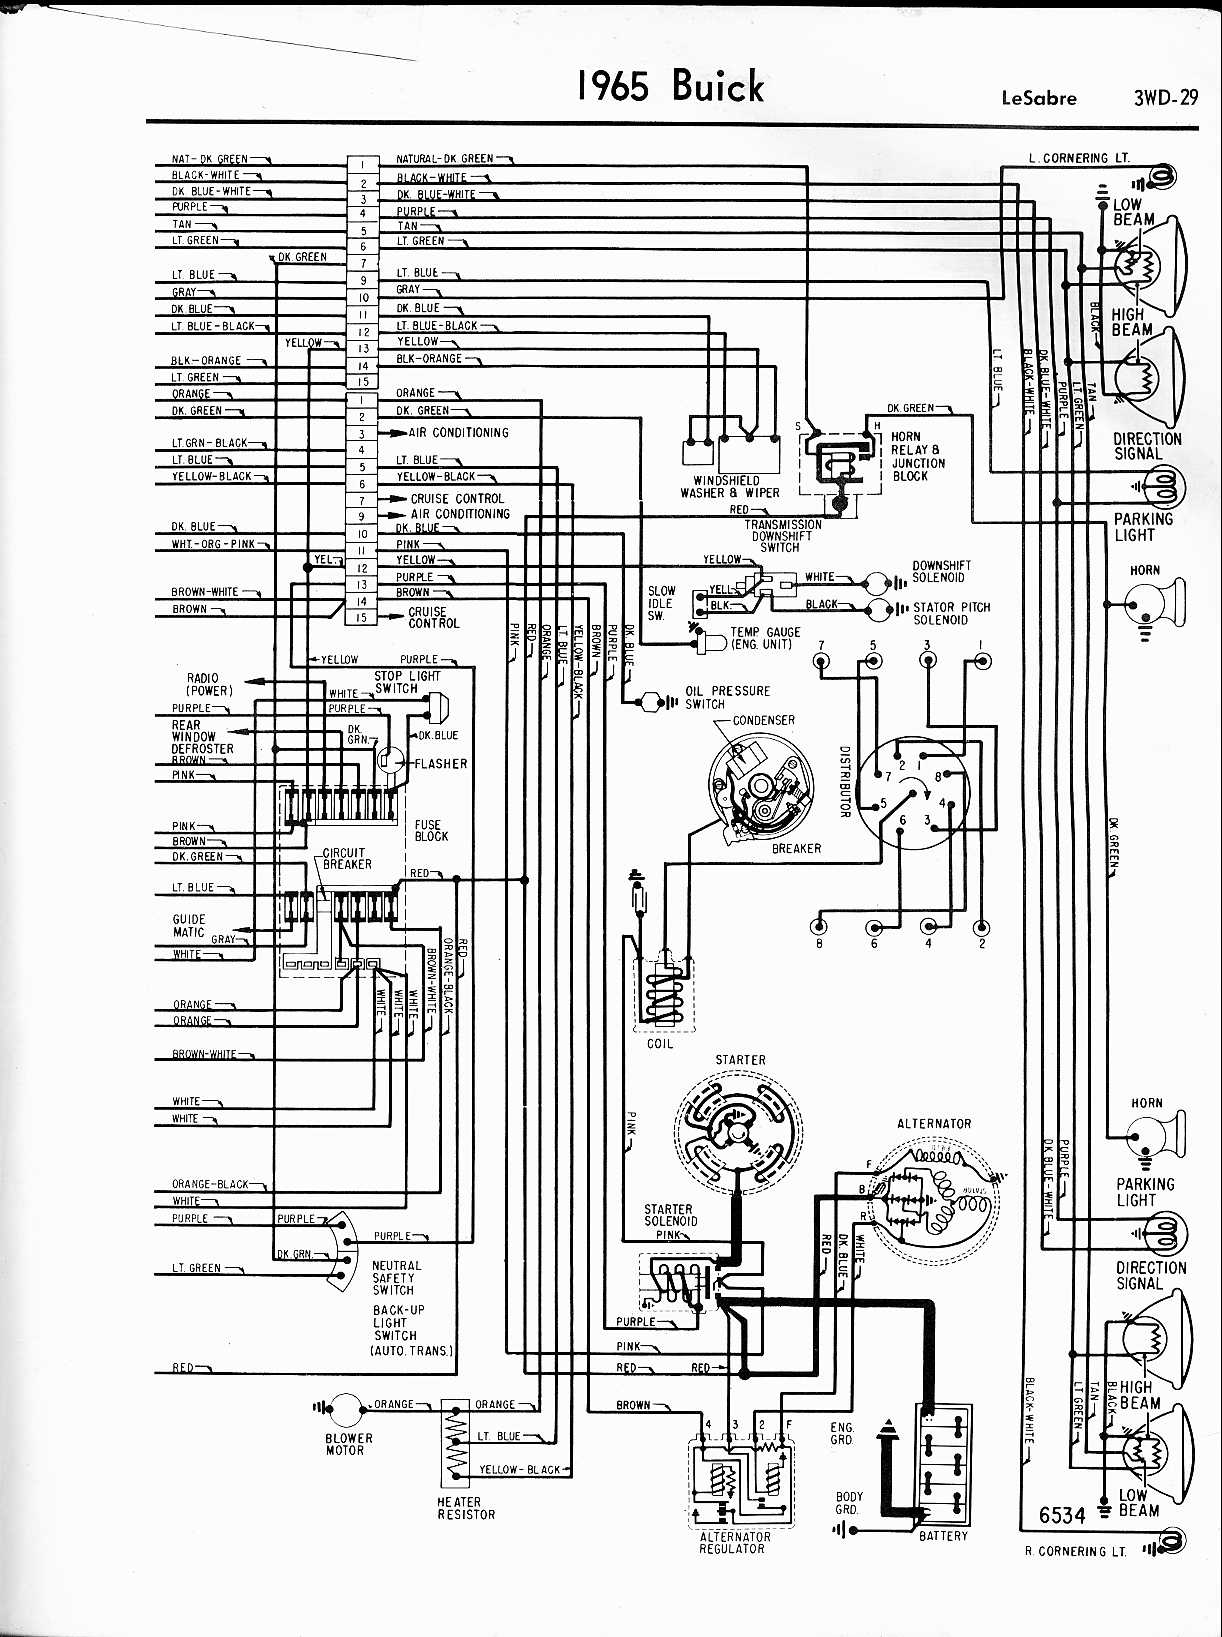 Dodge Alternator Wiring 1965 Diagram Schematics 2002 Vw Beetle Harness Buick Diagrams 1957 1987 Dakota